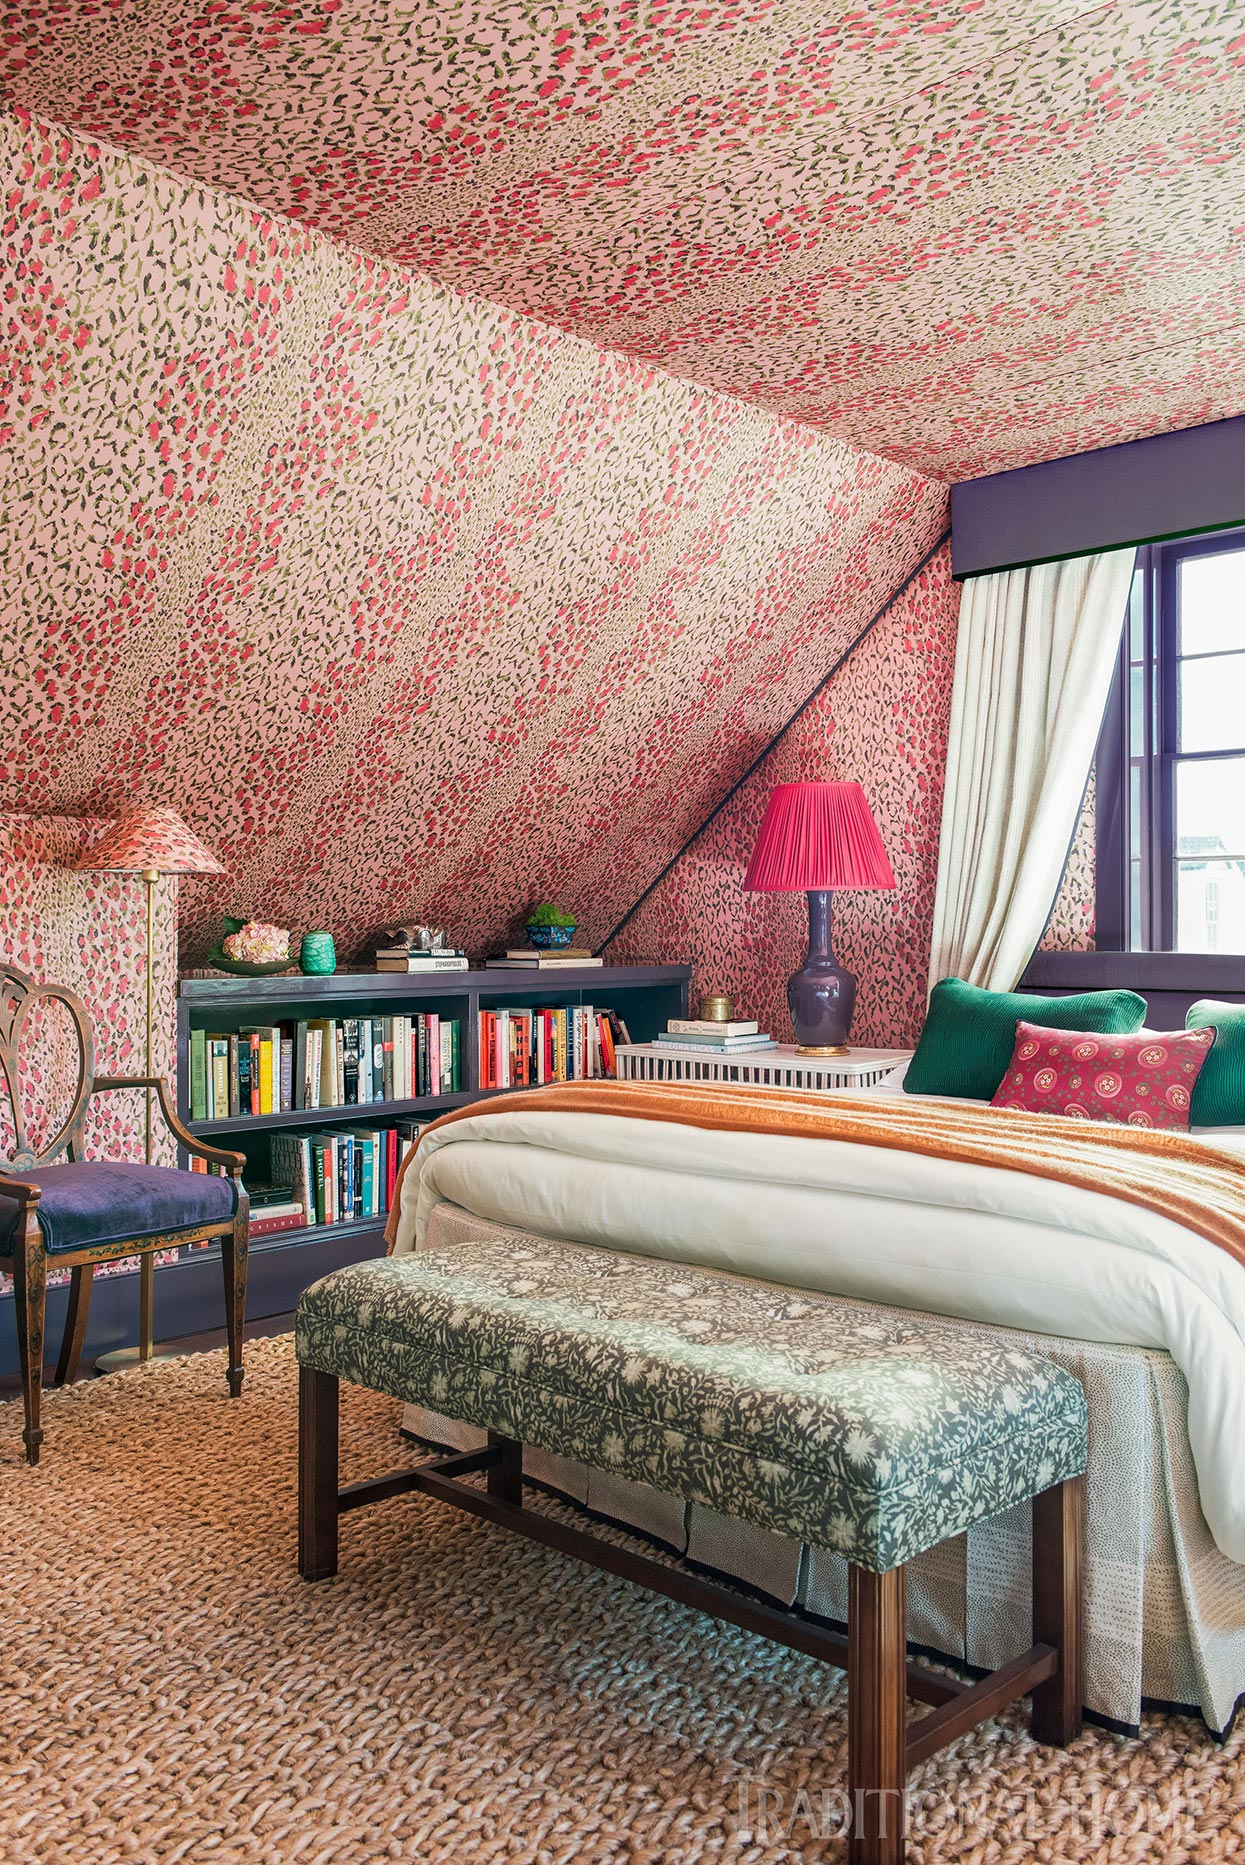 dormer bedroom with pink leopard print walls and ceiling